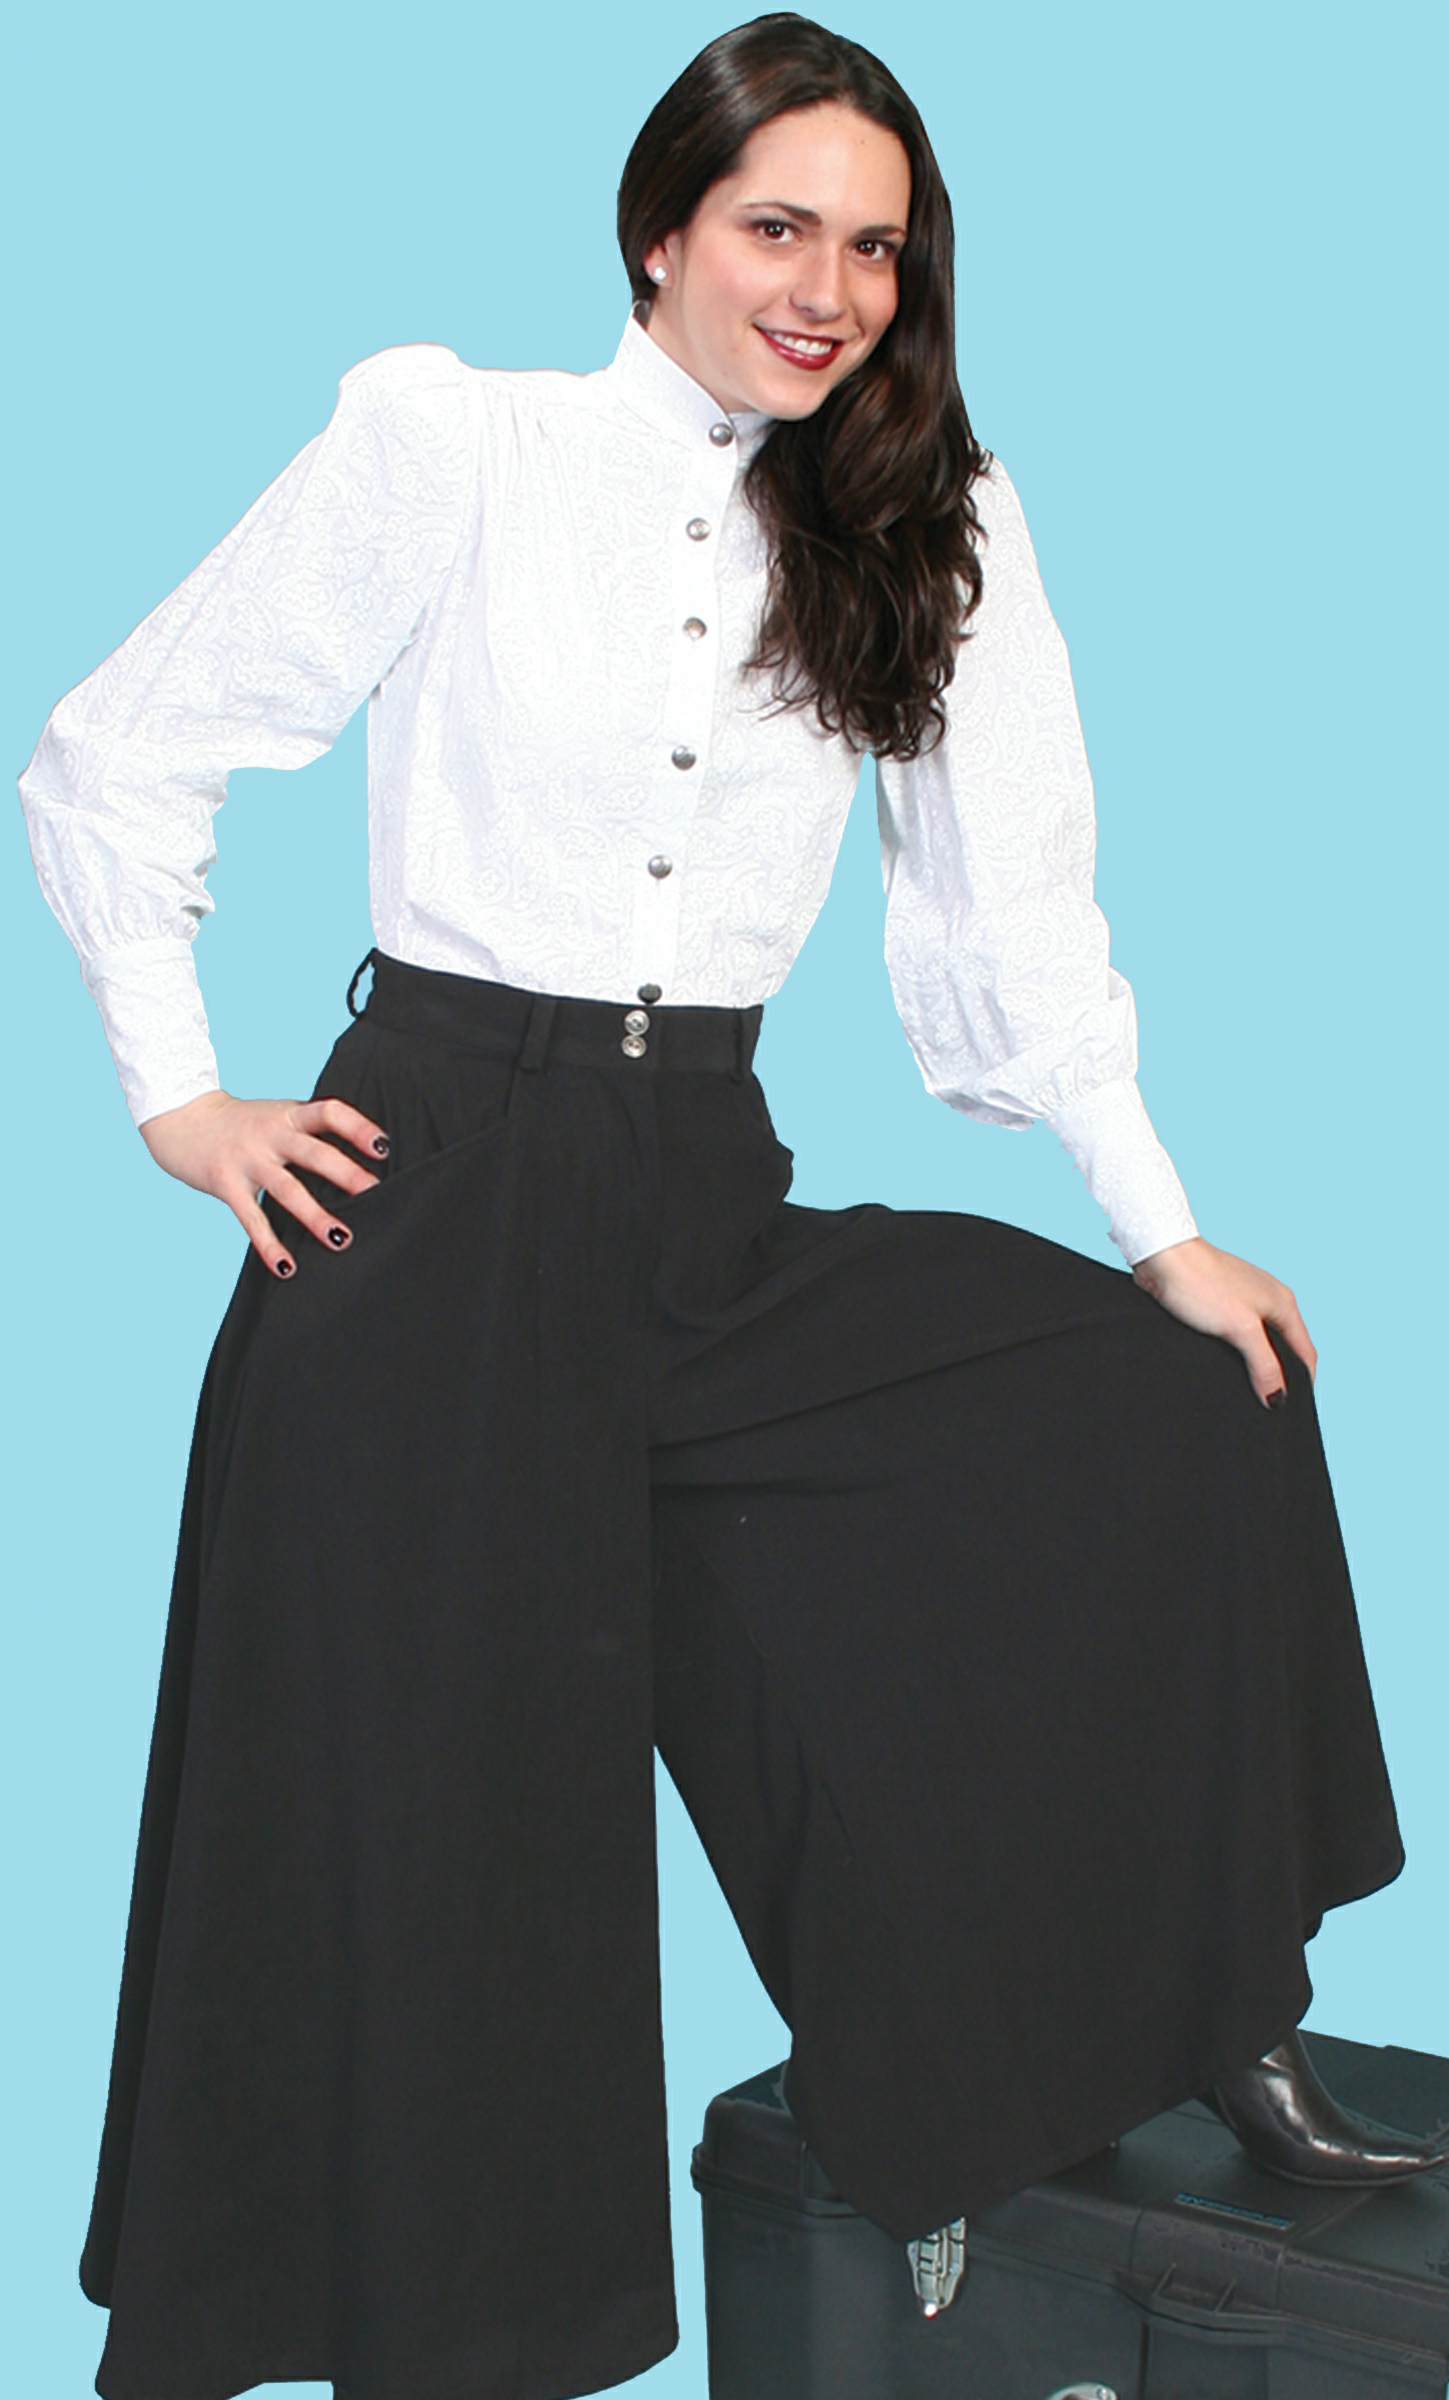 Old west womens clothing Cheap online clothing stores